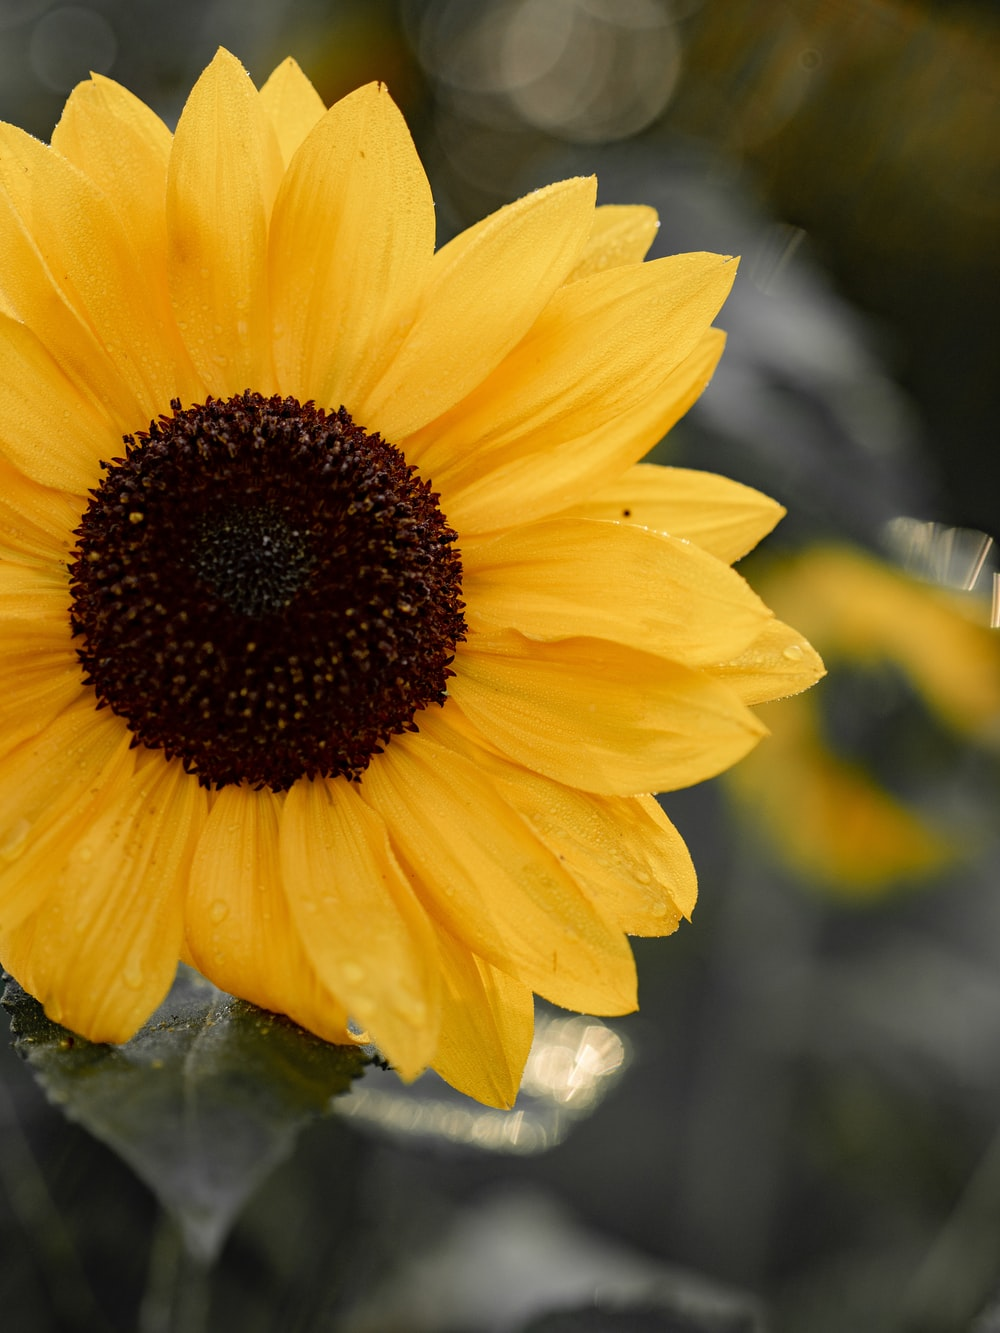 tilt shift photography of yellow and black flower